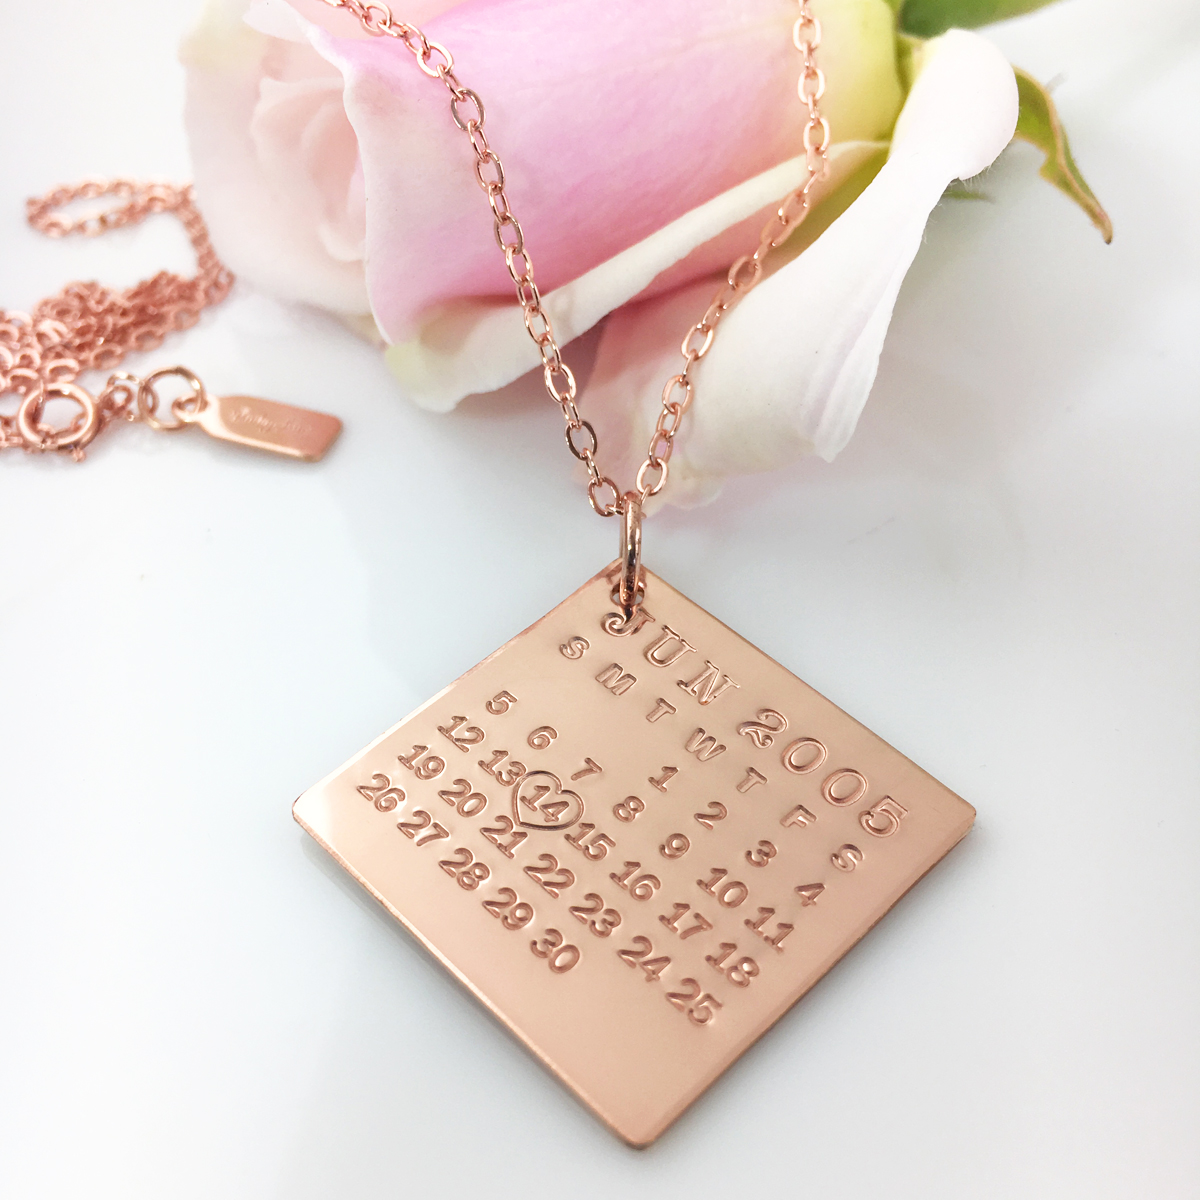 Mark Your Calendar Necklace - Rose Gold Filled